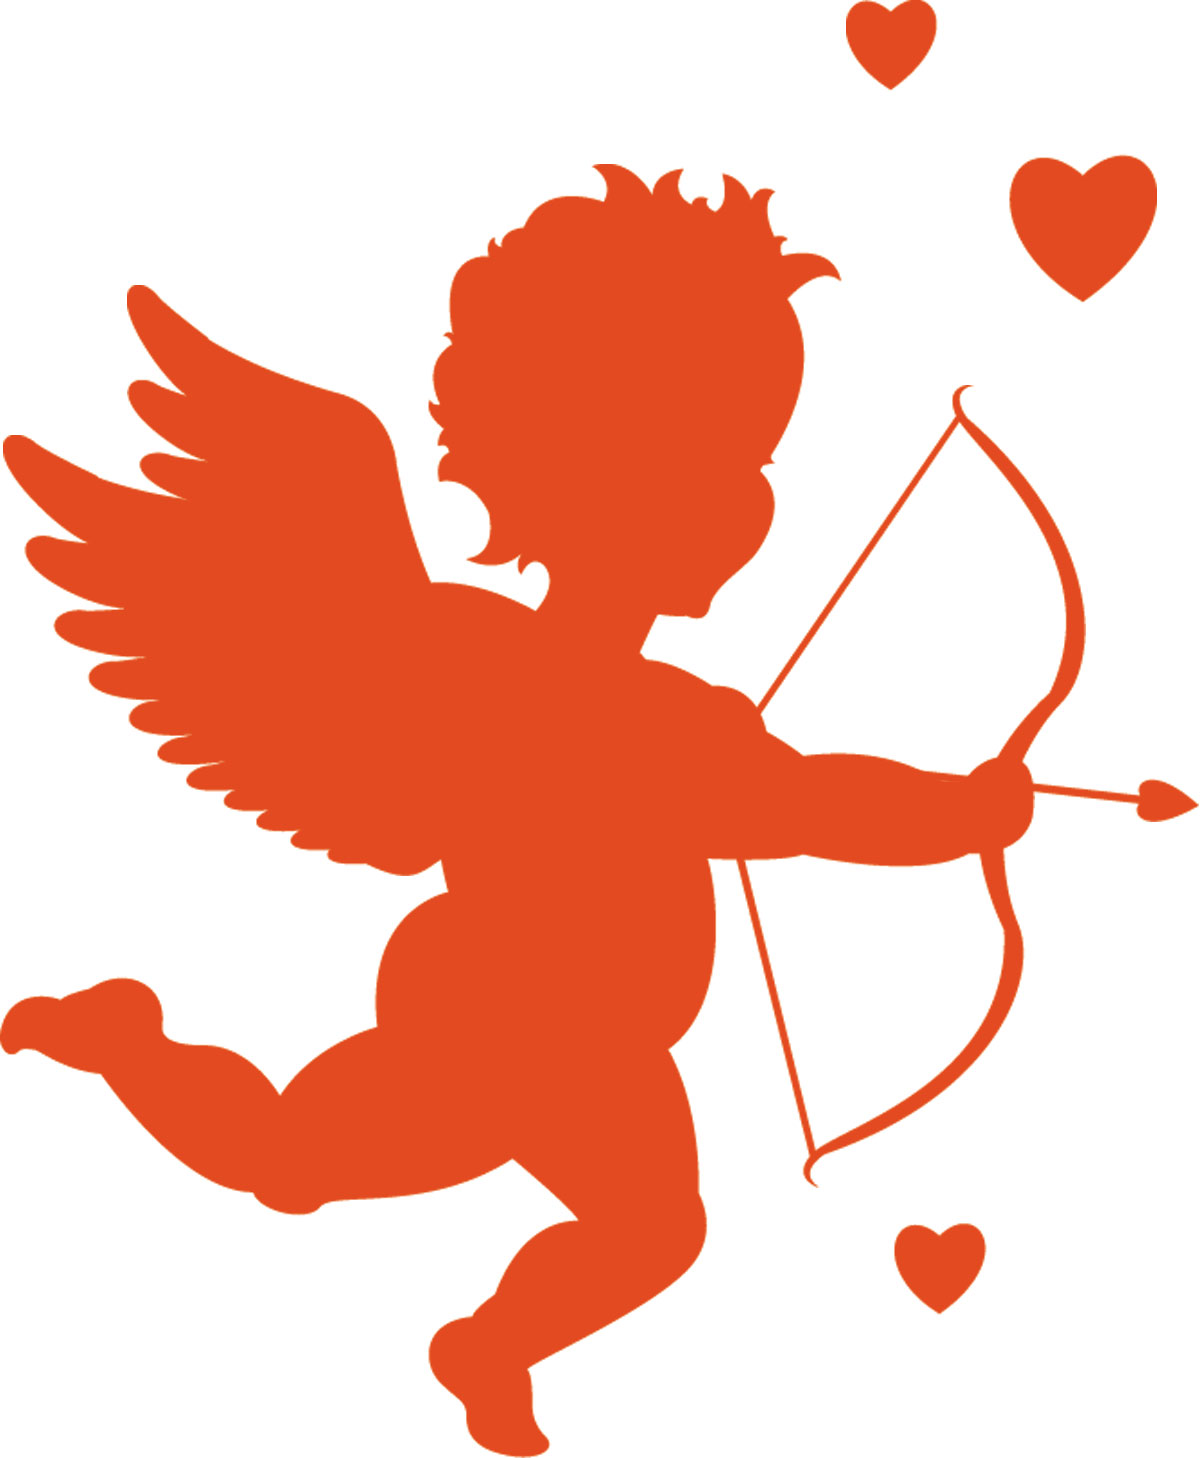 Th N T Nh Y U Cupid-Th N T Nh Y U Cupid-18